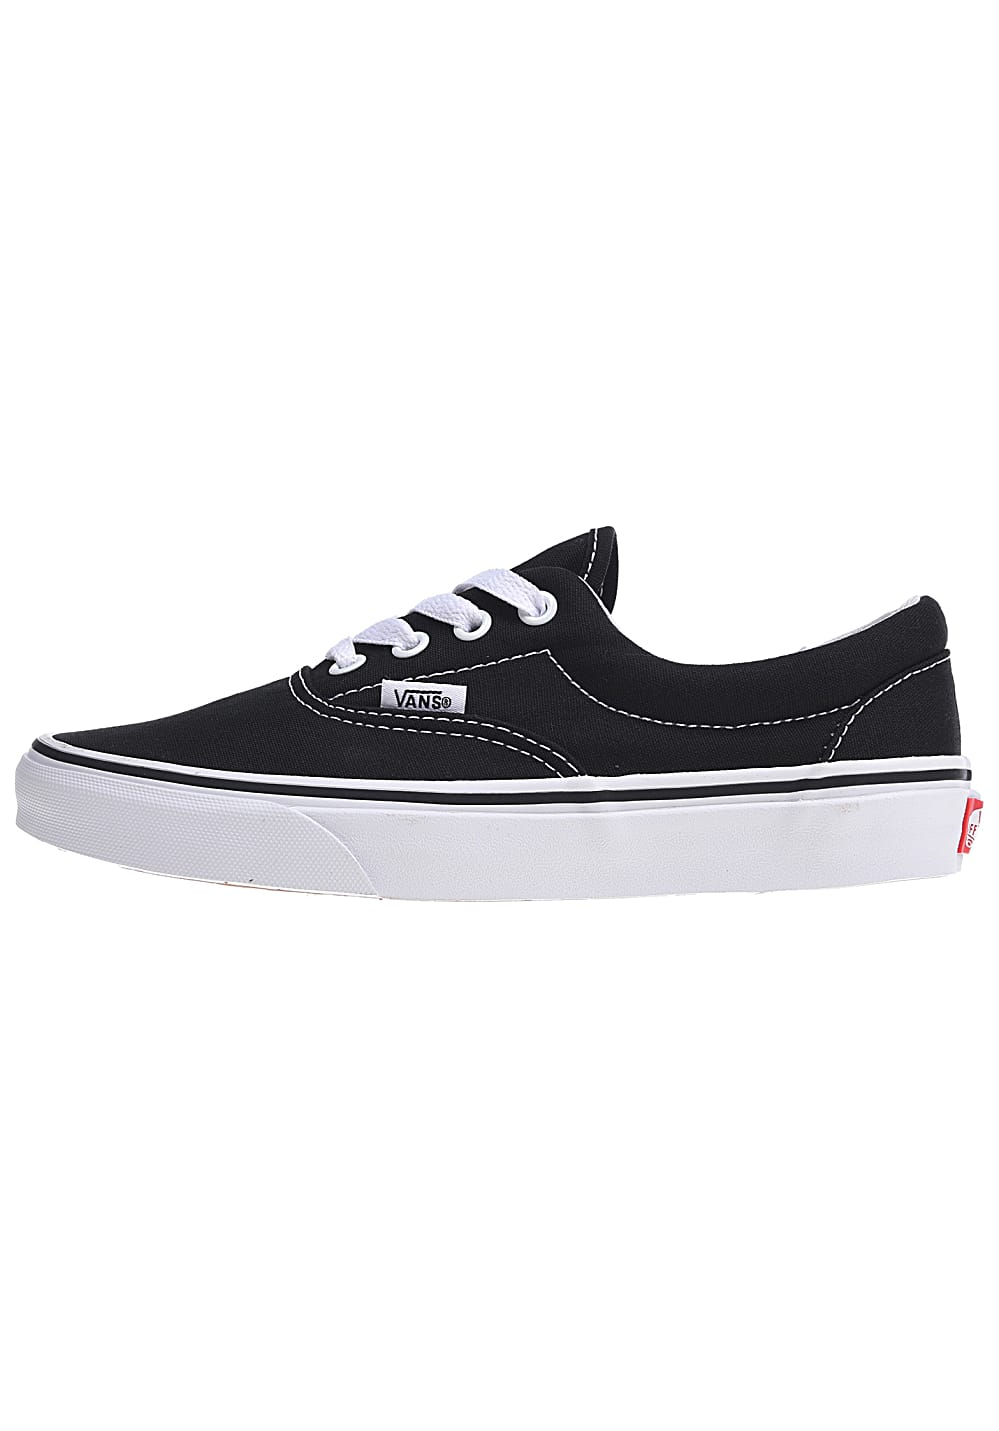 VANS Era - Sneaker - Schwarz - Planet Sports